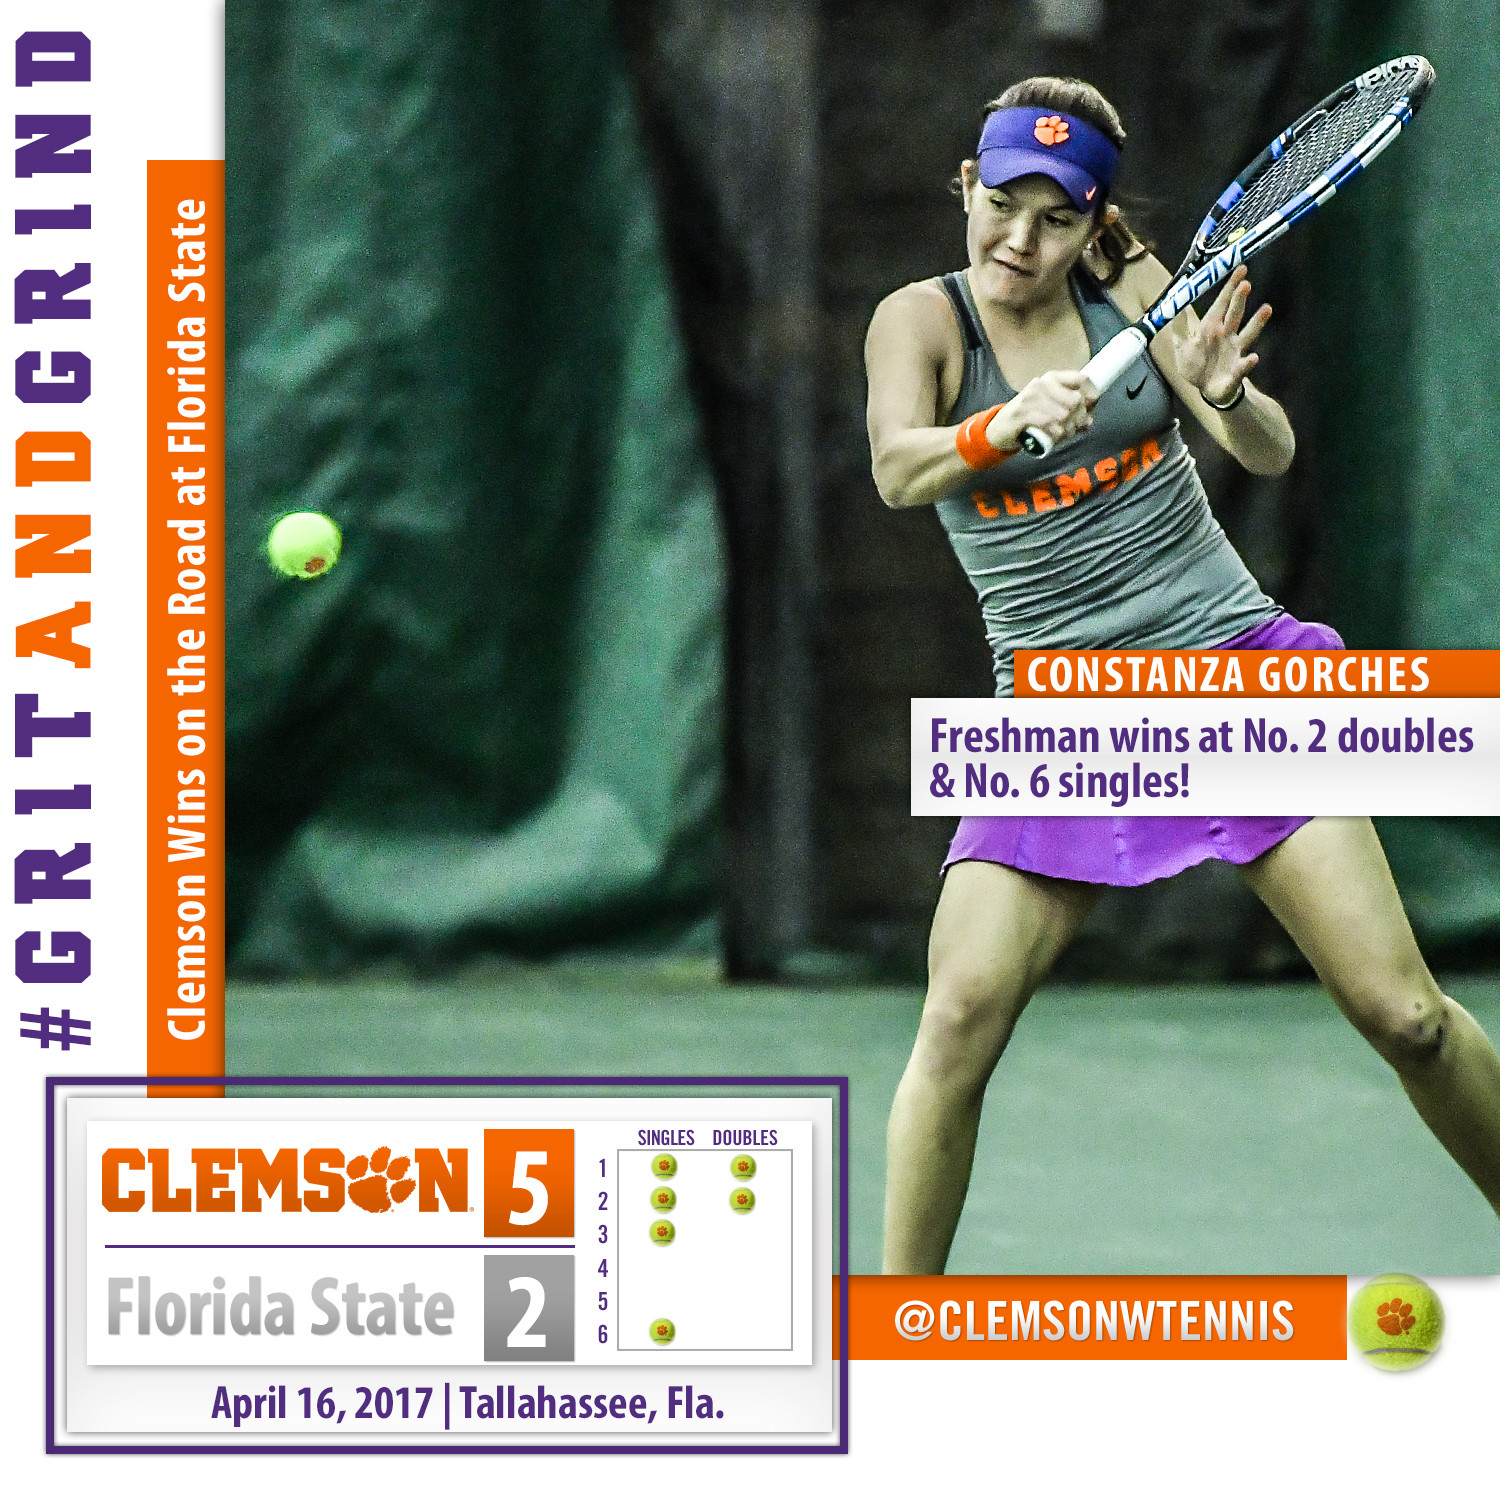 Clemson Rebounds with 5-2 Road Win at Florida State